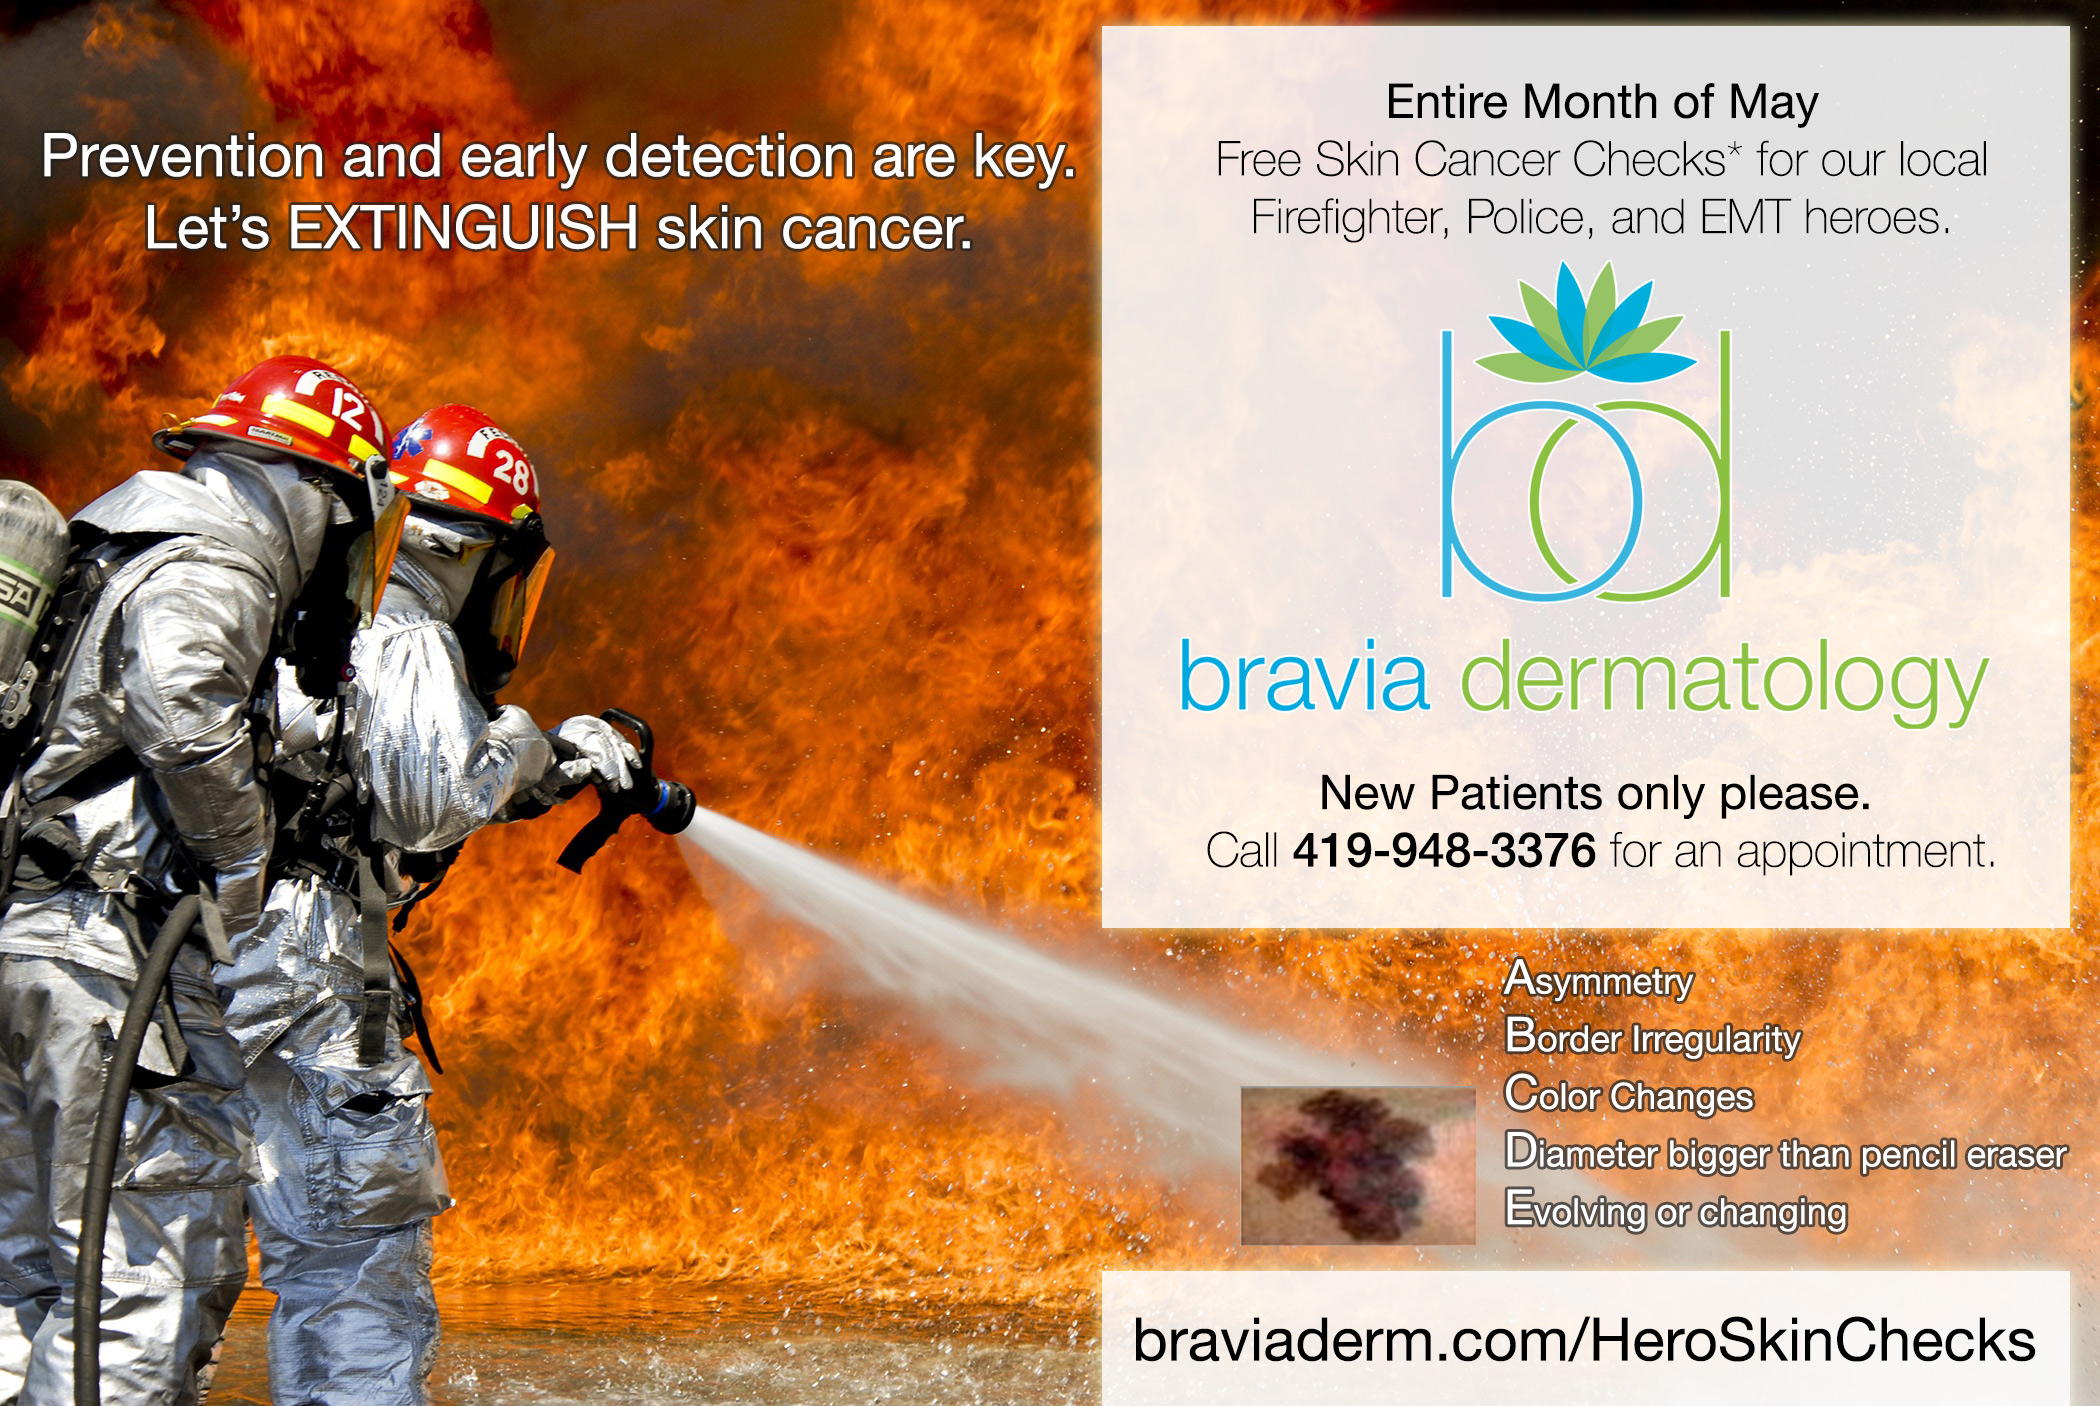 Hero Skin Checks at Bravia Dermatology in Toledo, Ohio - Free Skin Cancer Screenings